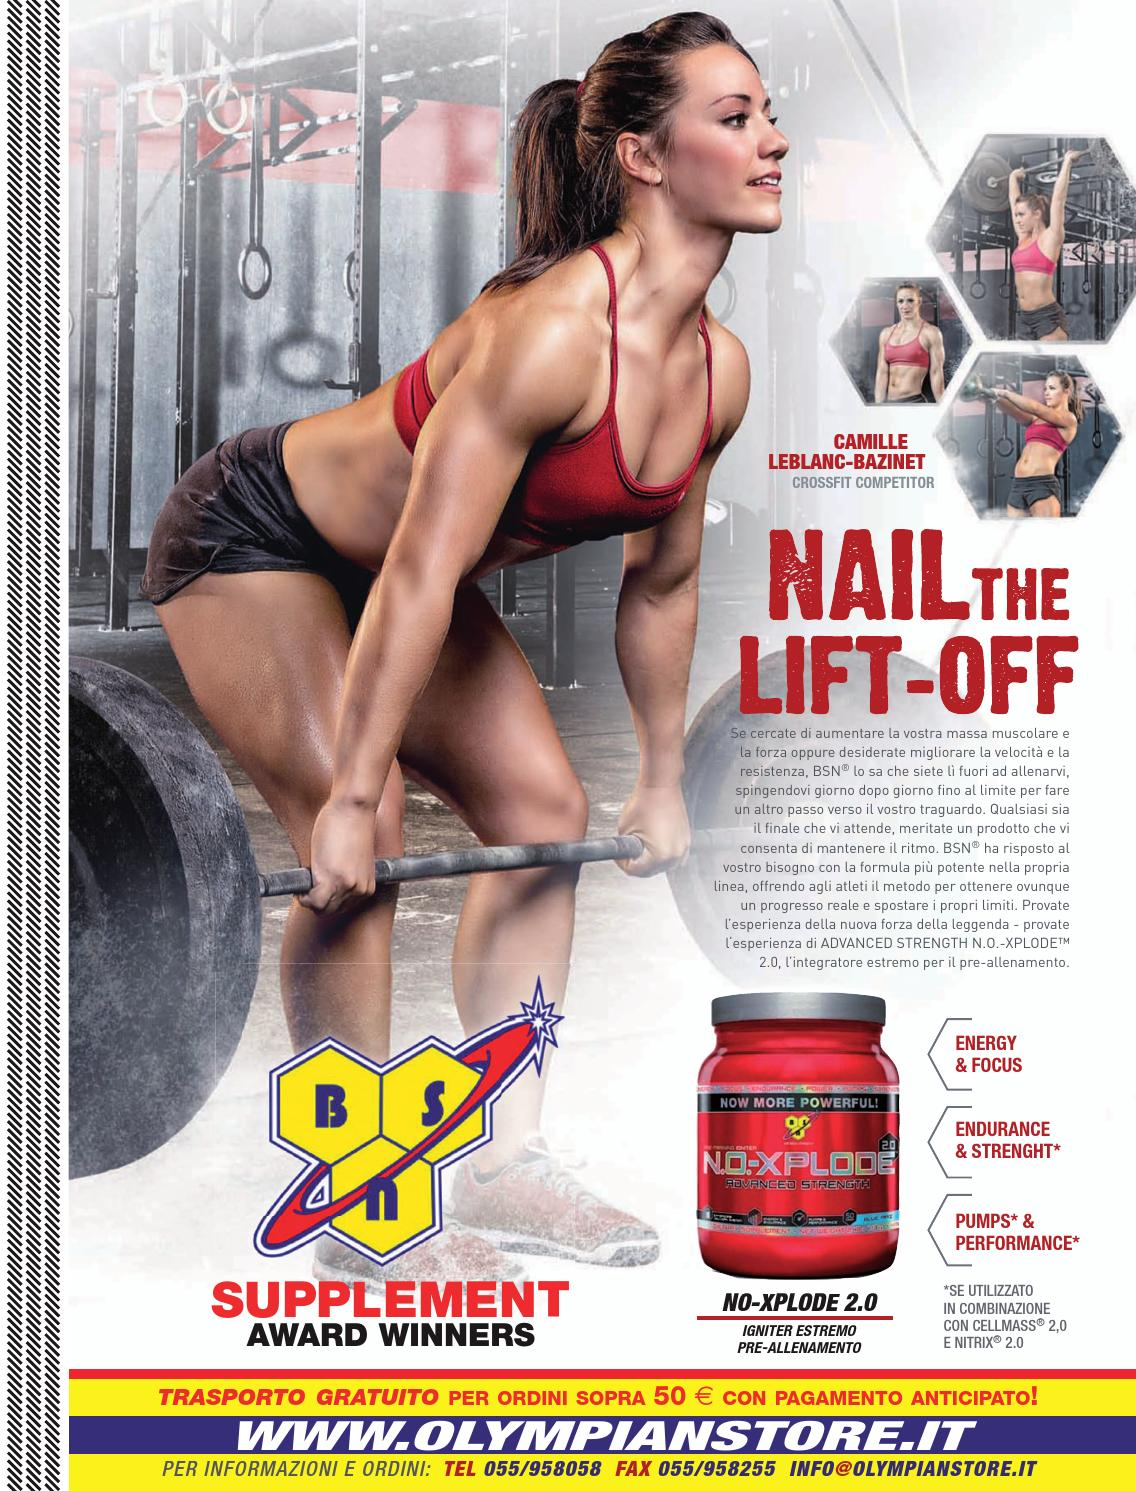 Muscle & Performance n.1 supplemento di Olympian's News n.153